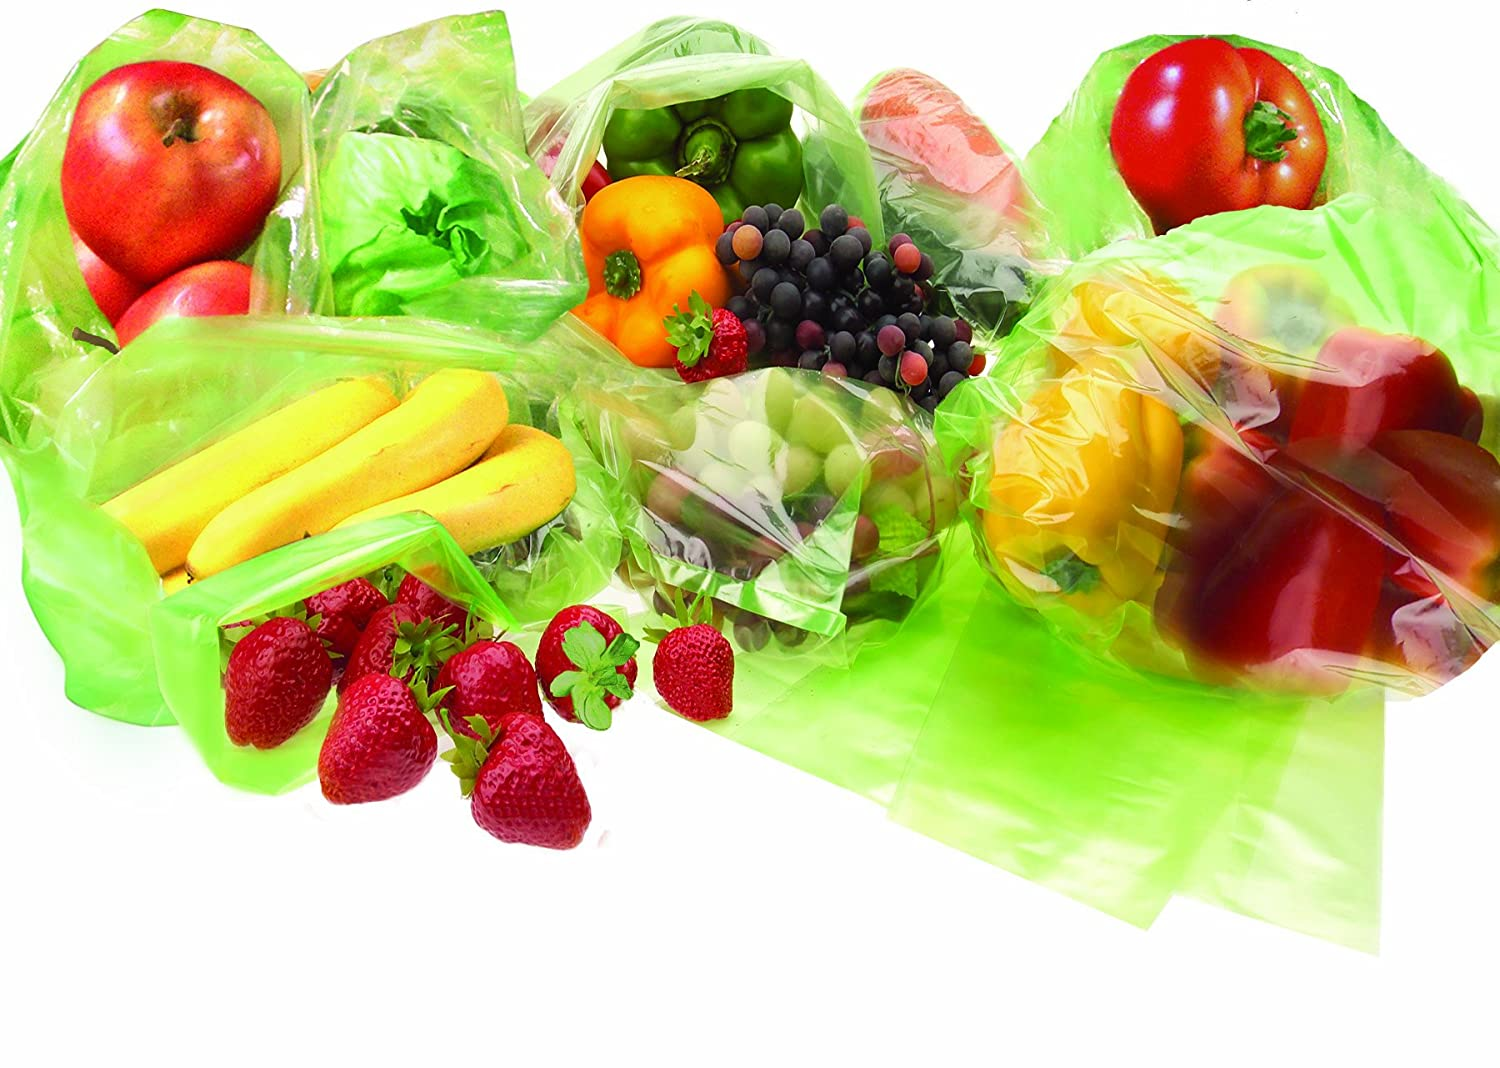 20 Storage Vegetable Fruit and Produce Green fresh Bags Reusable Life